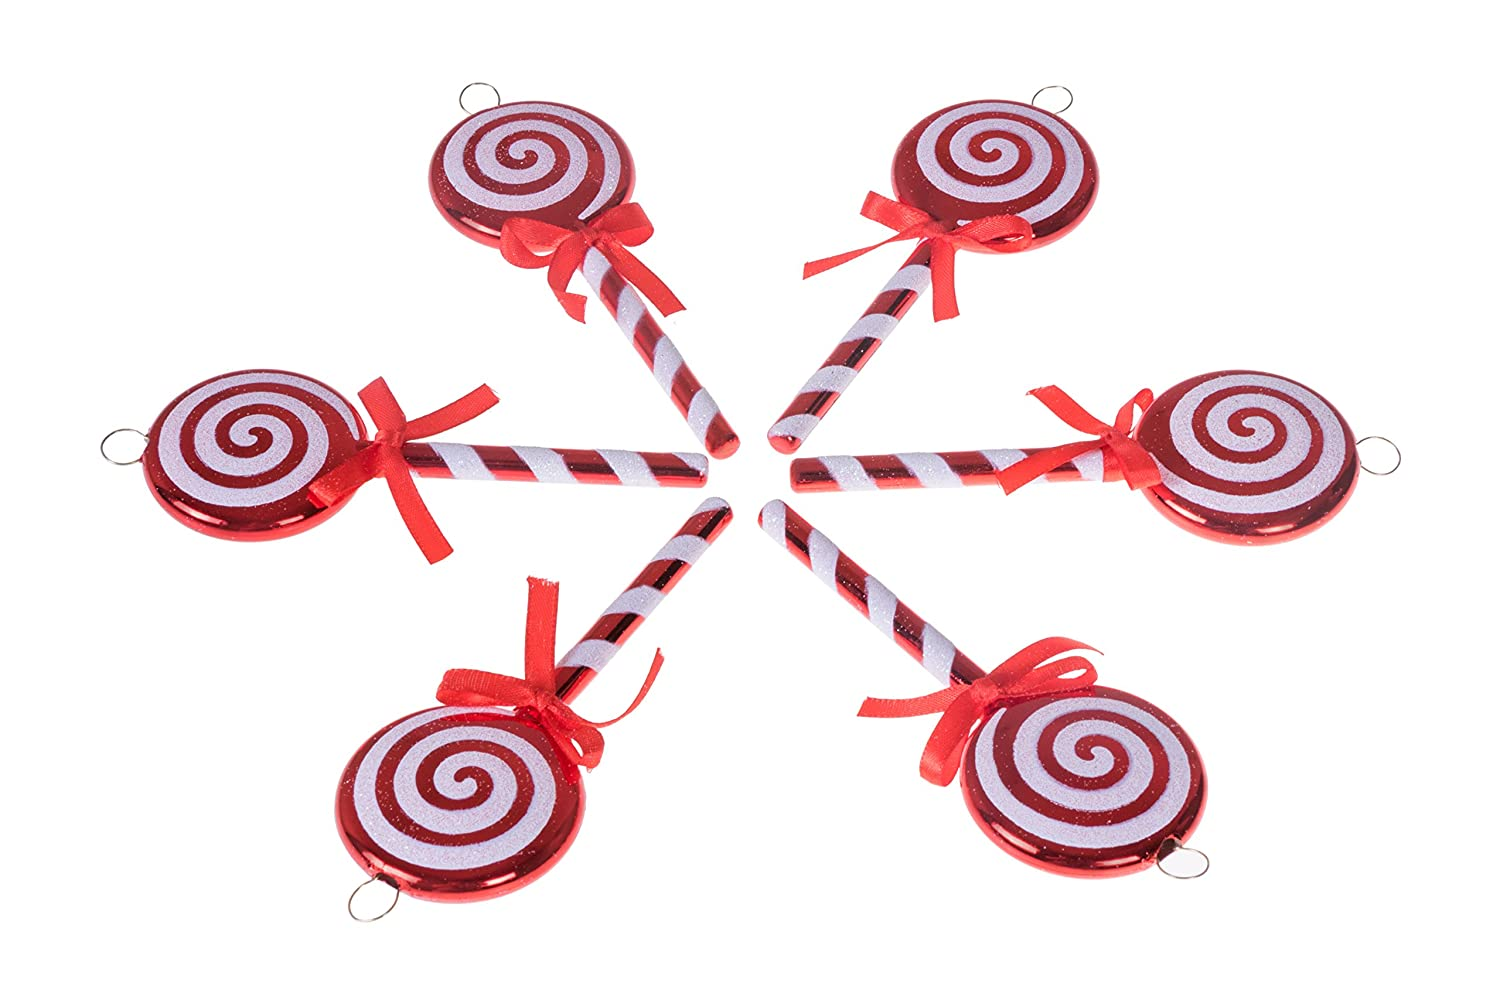 "Clever Creations Christmas Lollipop Ornament Set Red and White Candy Cane Design | 6 Pack | Festive Holiday Décor | Timeless Classic Design | Shatter Resistant | Hangers Included | 5"" Tall"